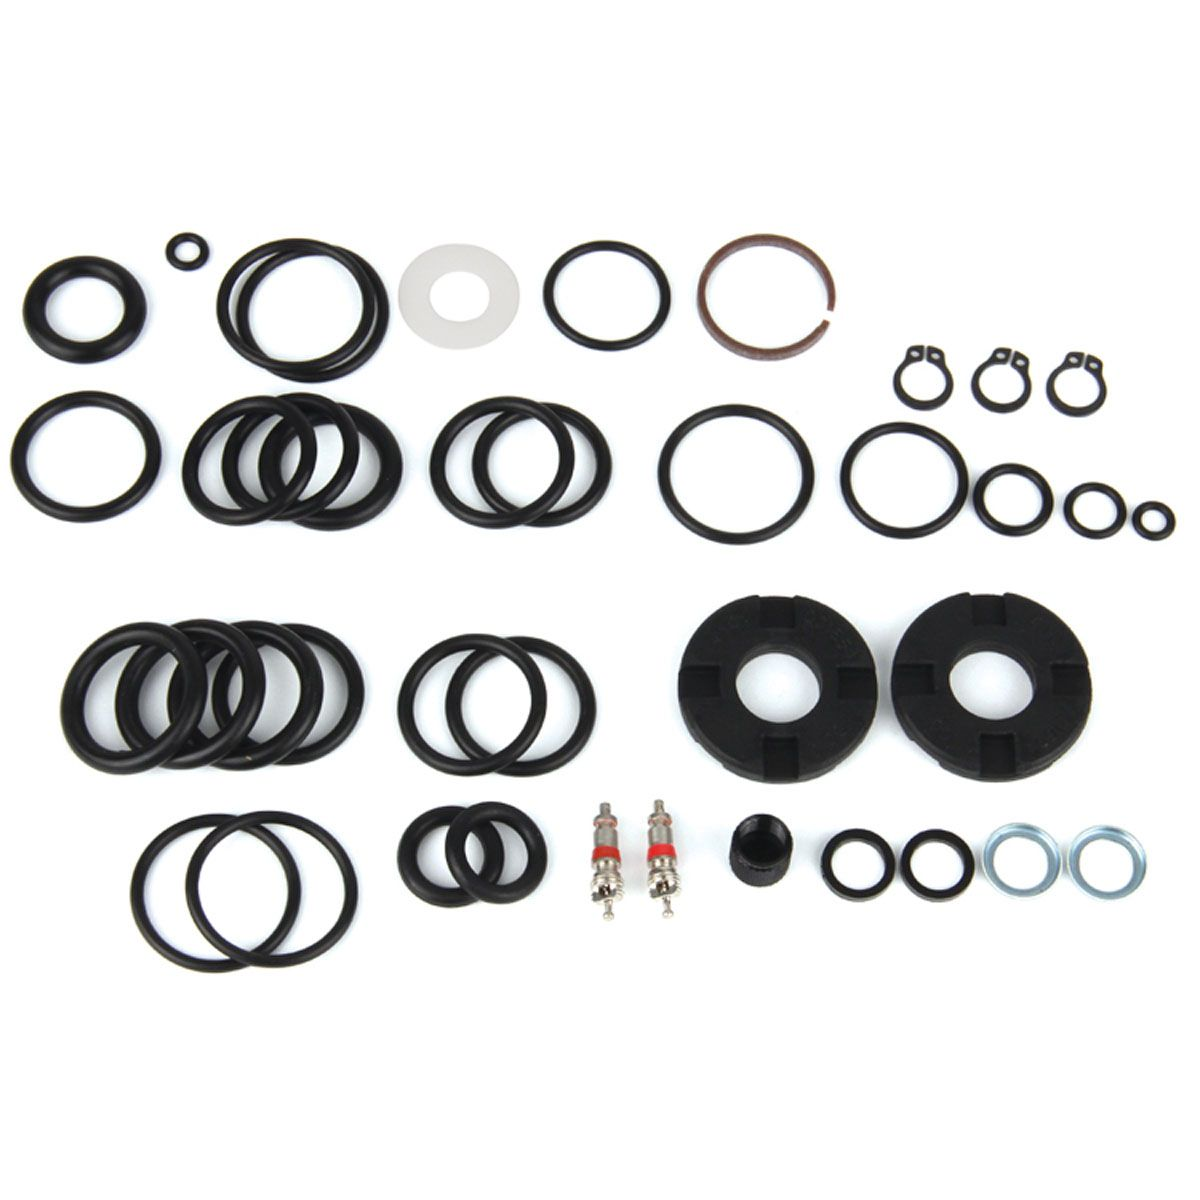 Kit Reparo Retentores Rock Shox Sid Fork - 11.4310.703.000